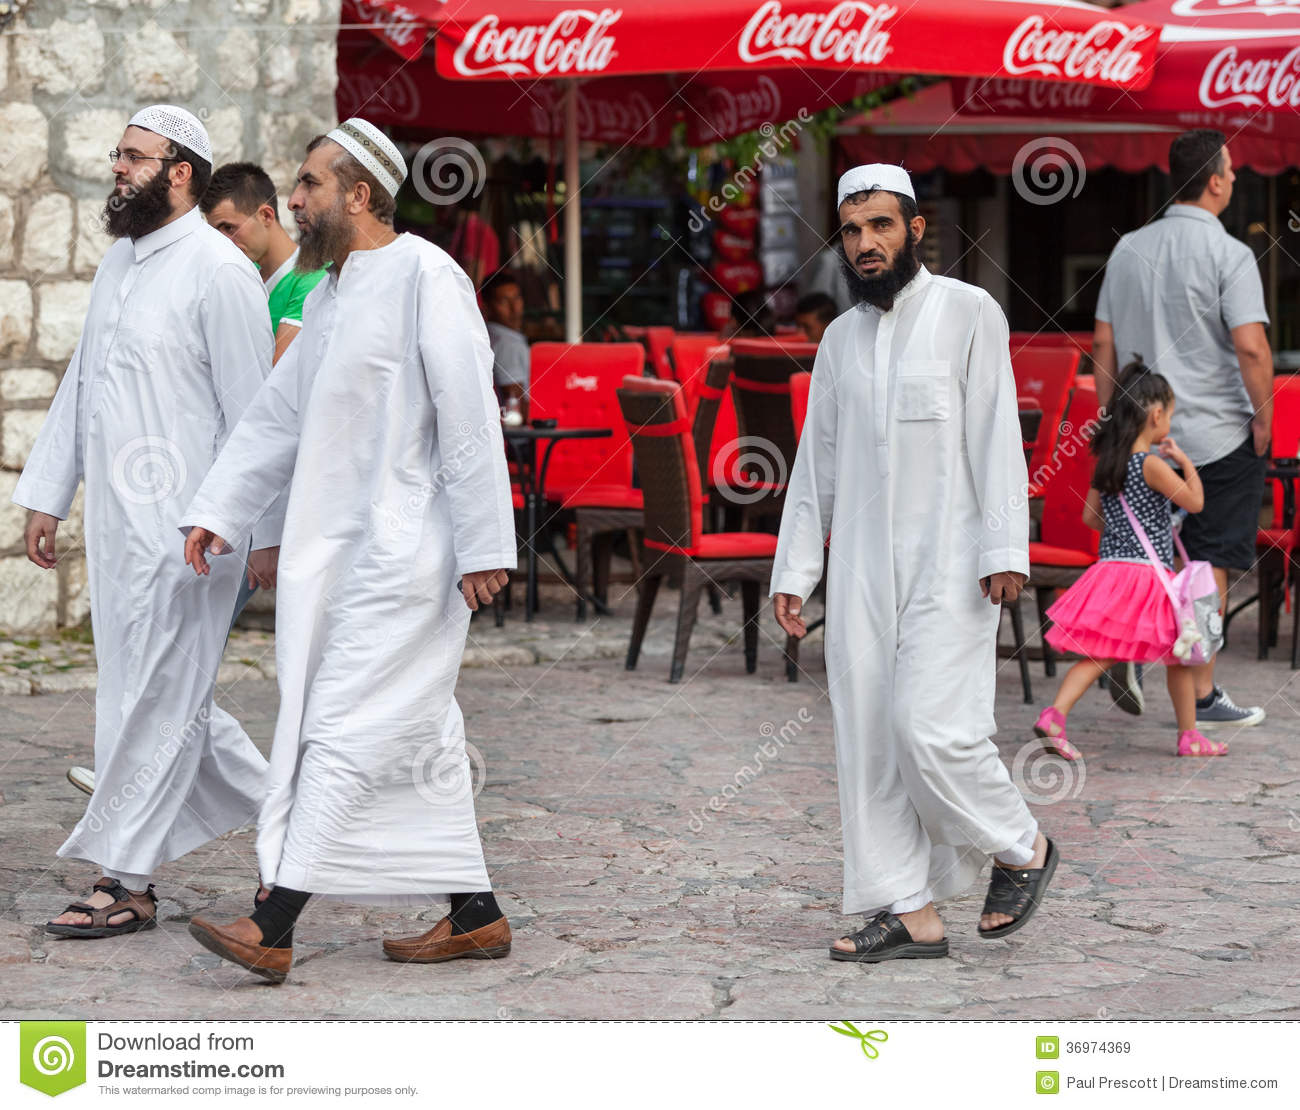 vancleave muslim single men Meet single catholic men in vancleave are you ready to find a partner to share life's romantic journey with or do you just want someone to go smack some balls with at the batting cages this week.